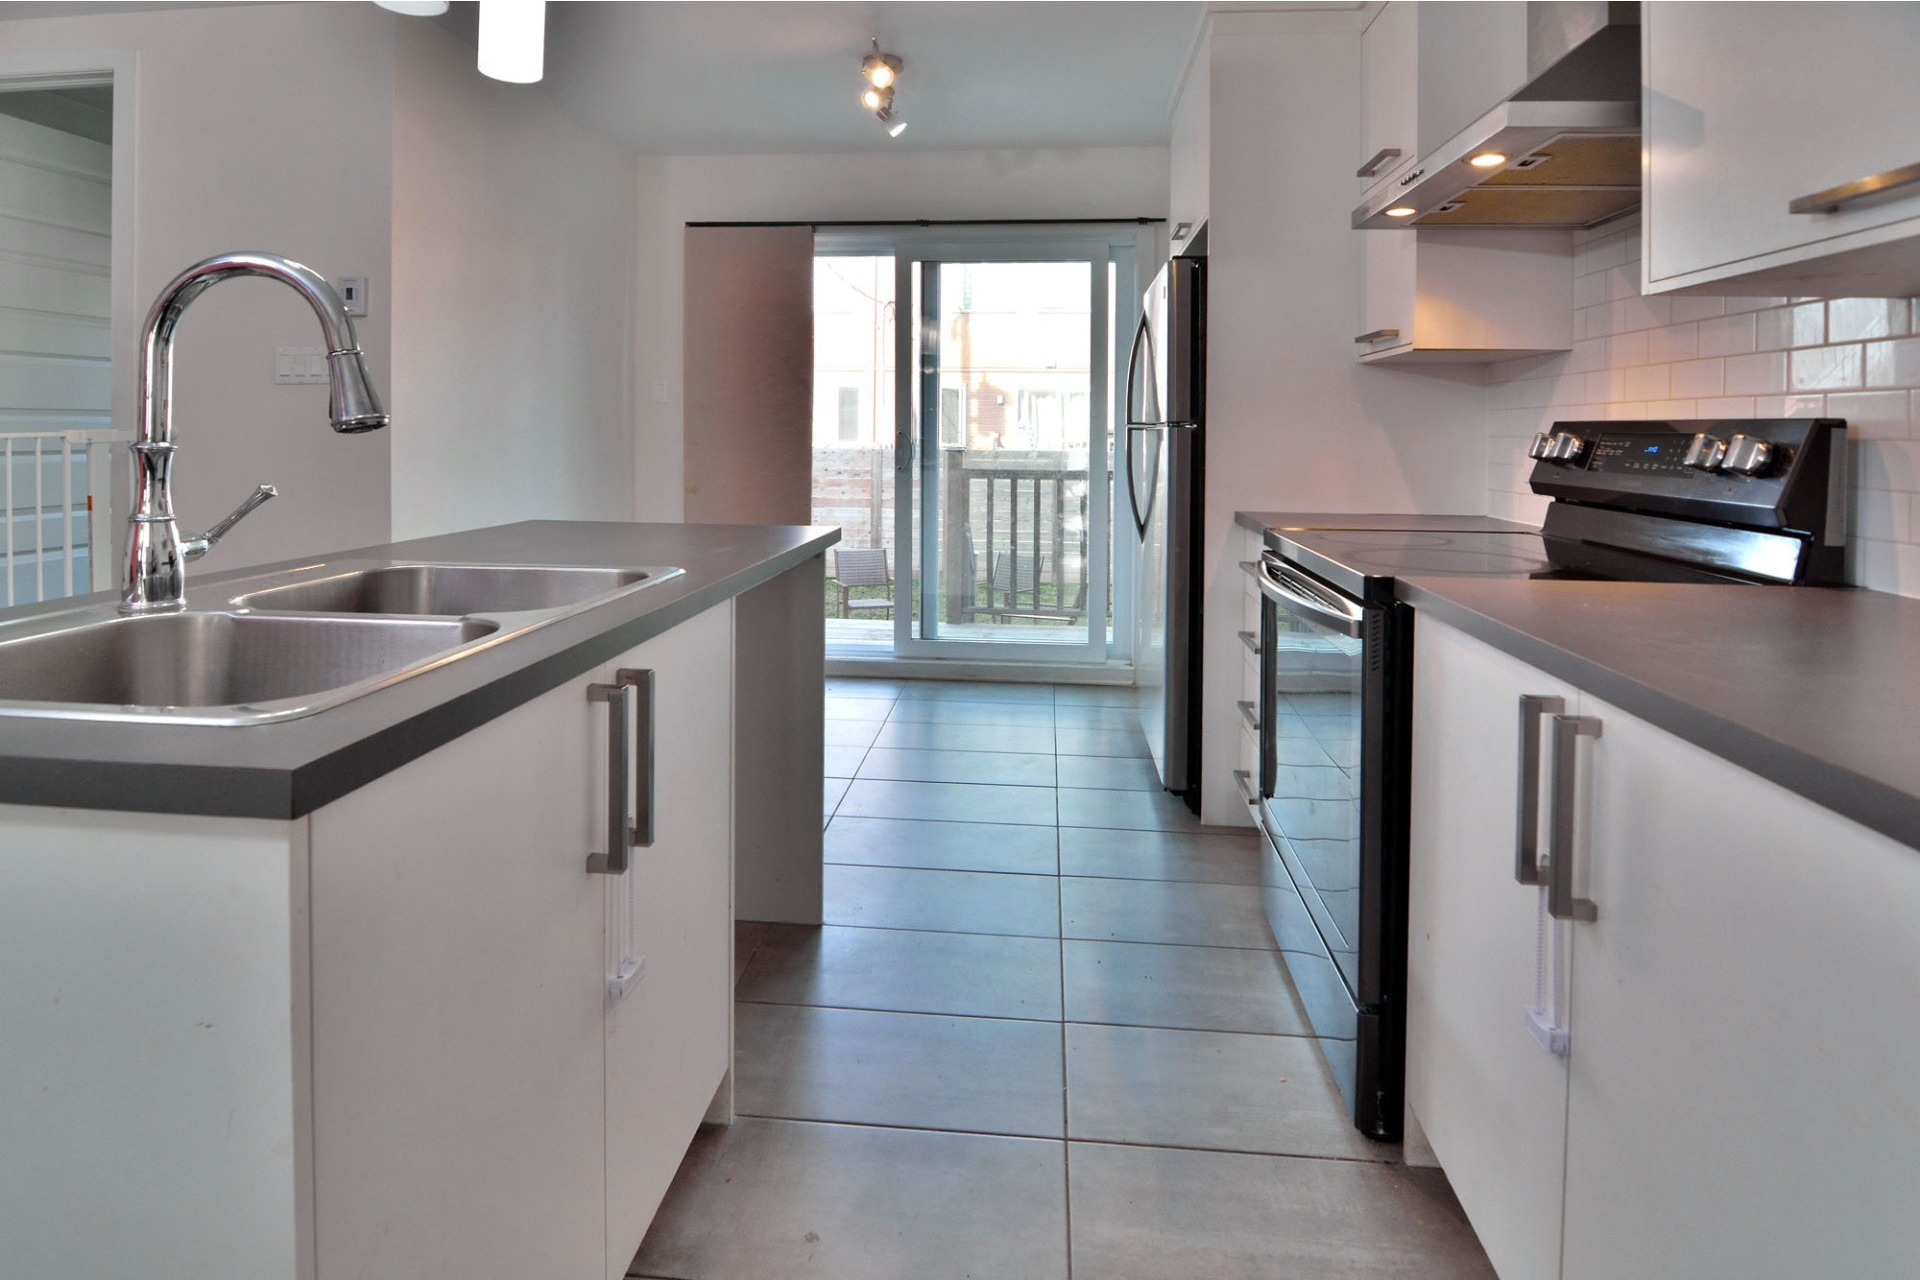 image 10 - House For sale Vaudreuil-Dorion - 7 rooms